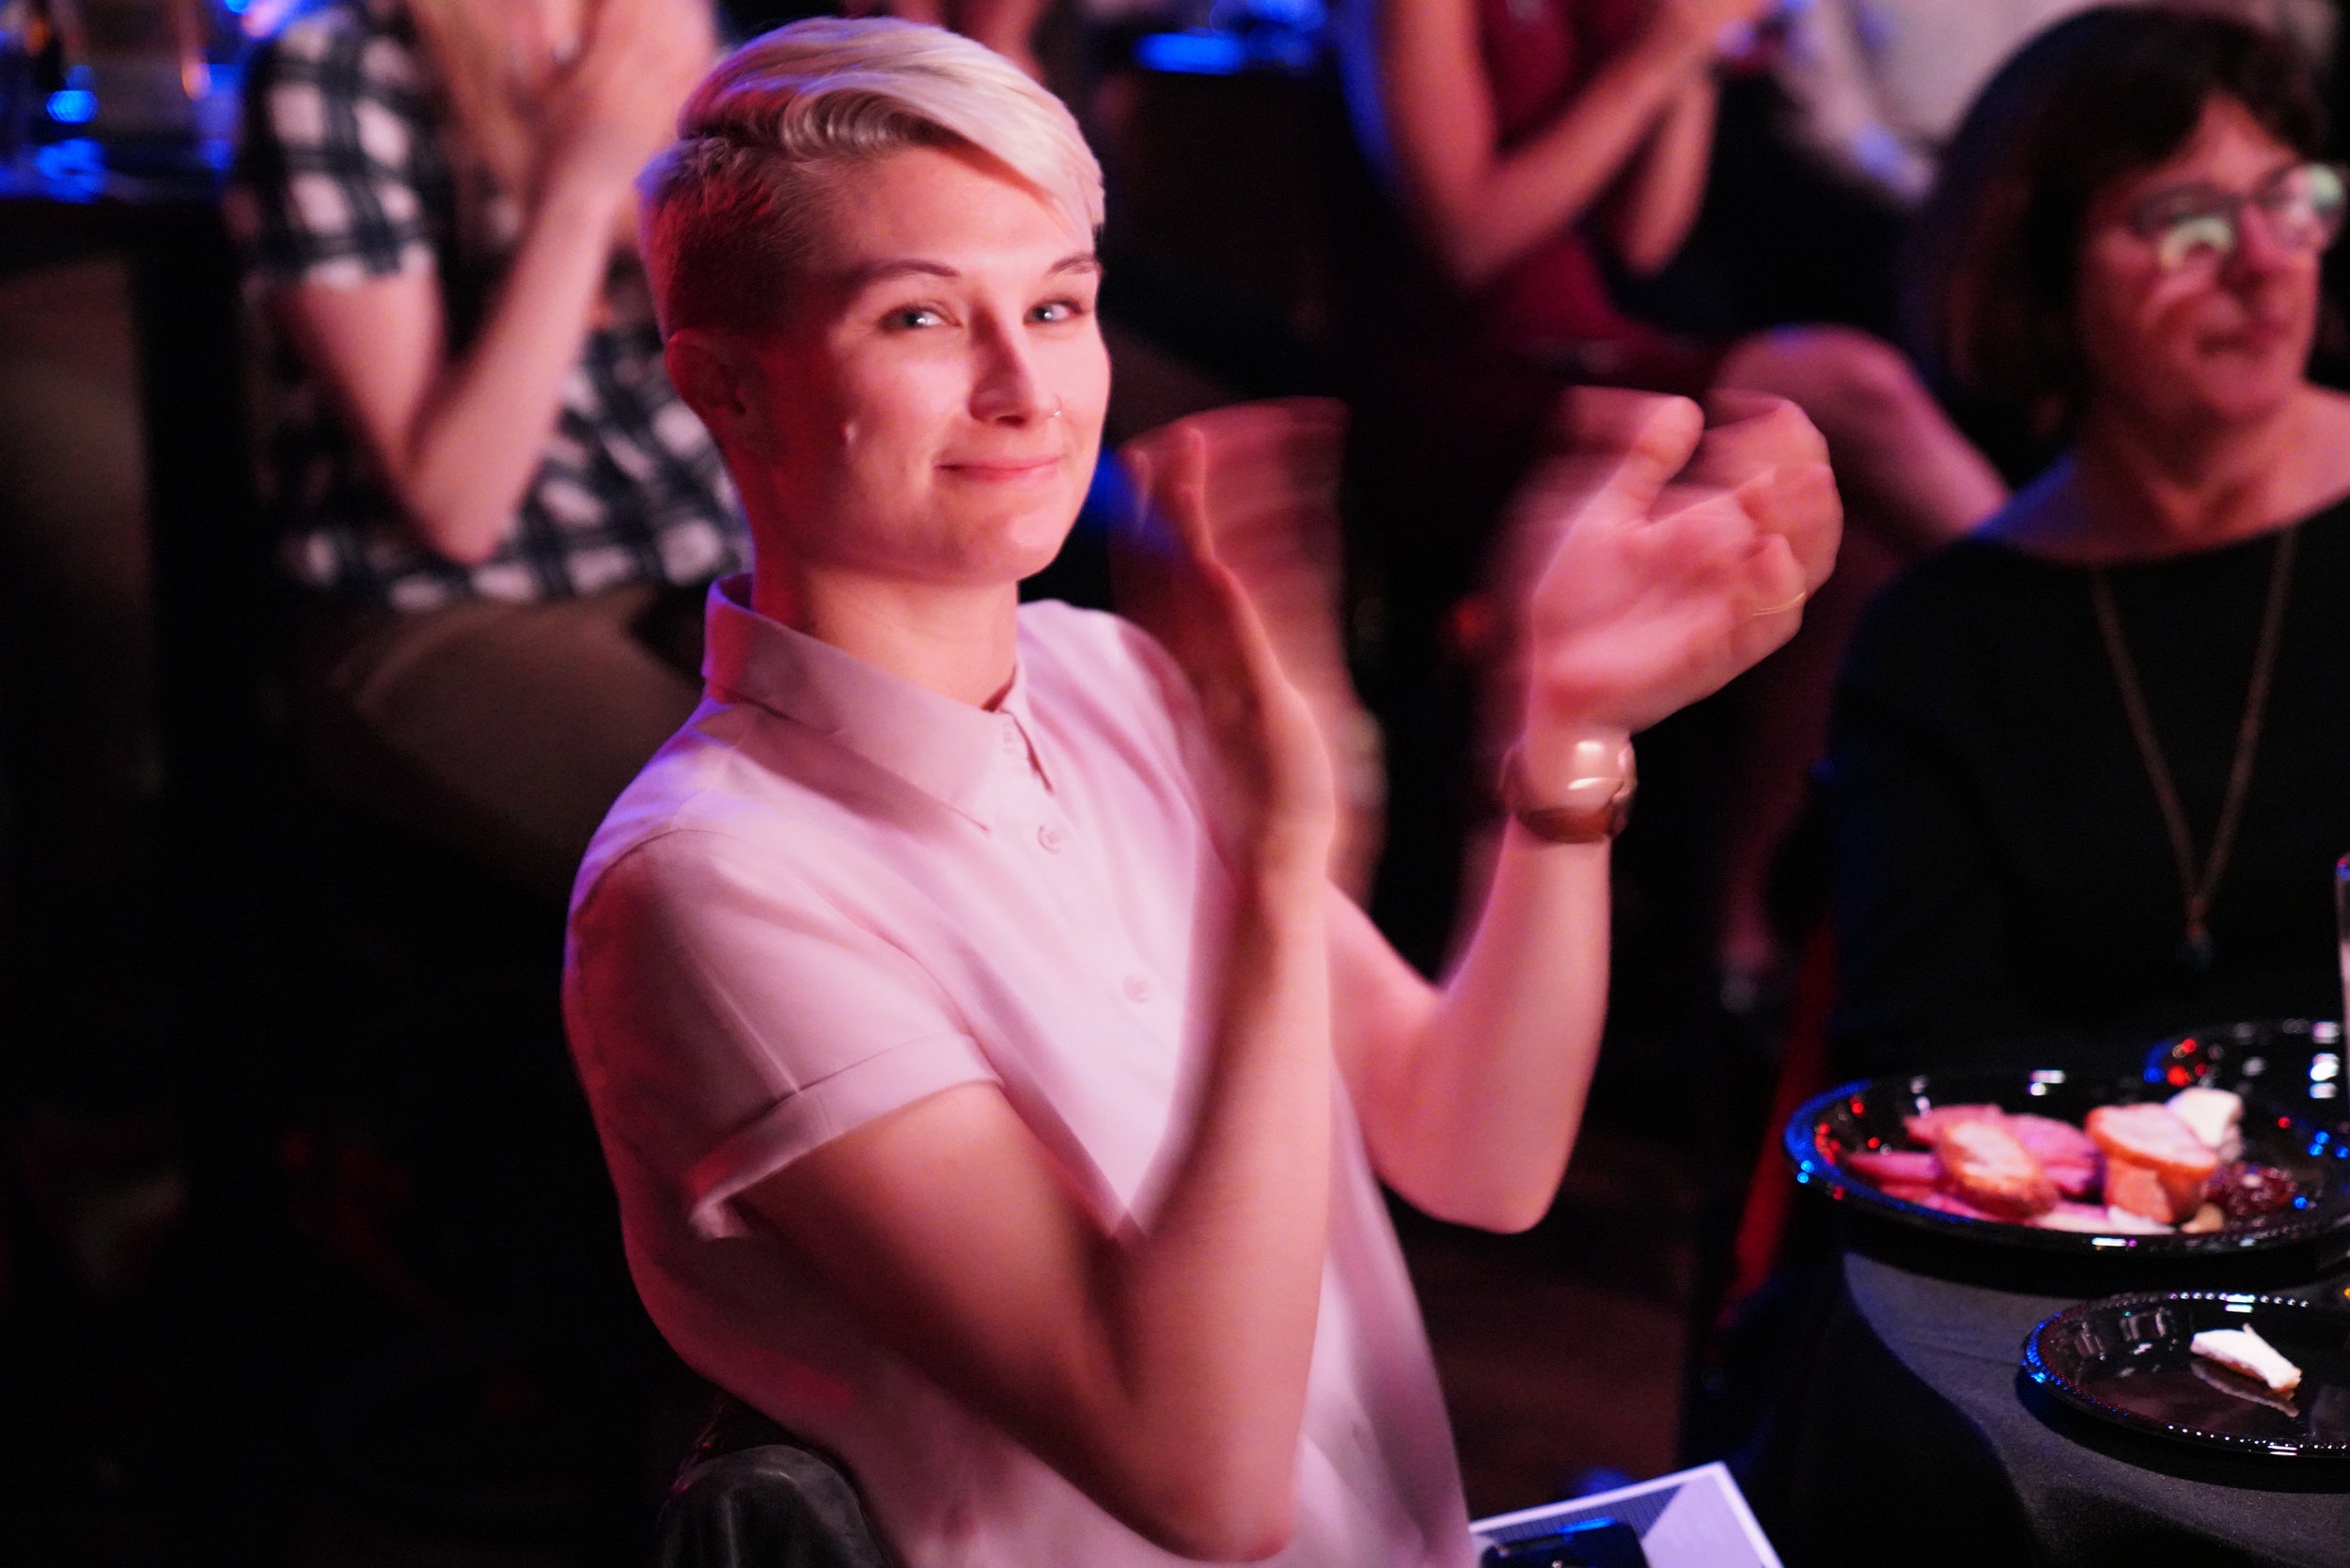 Arielle's wife, Meredith, applauds her spouse!